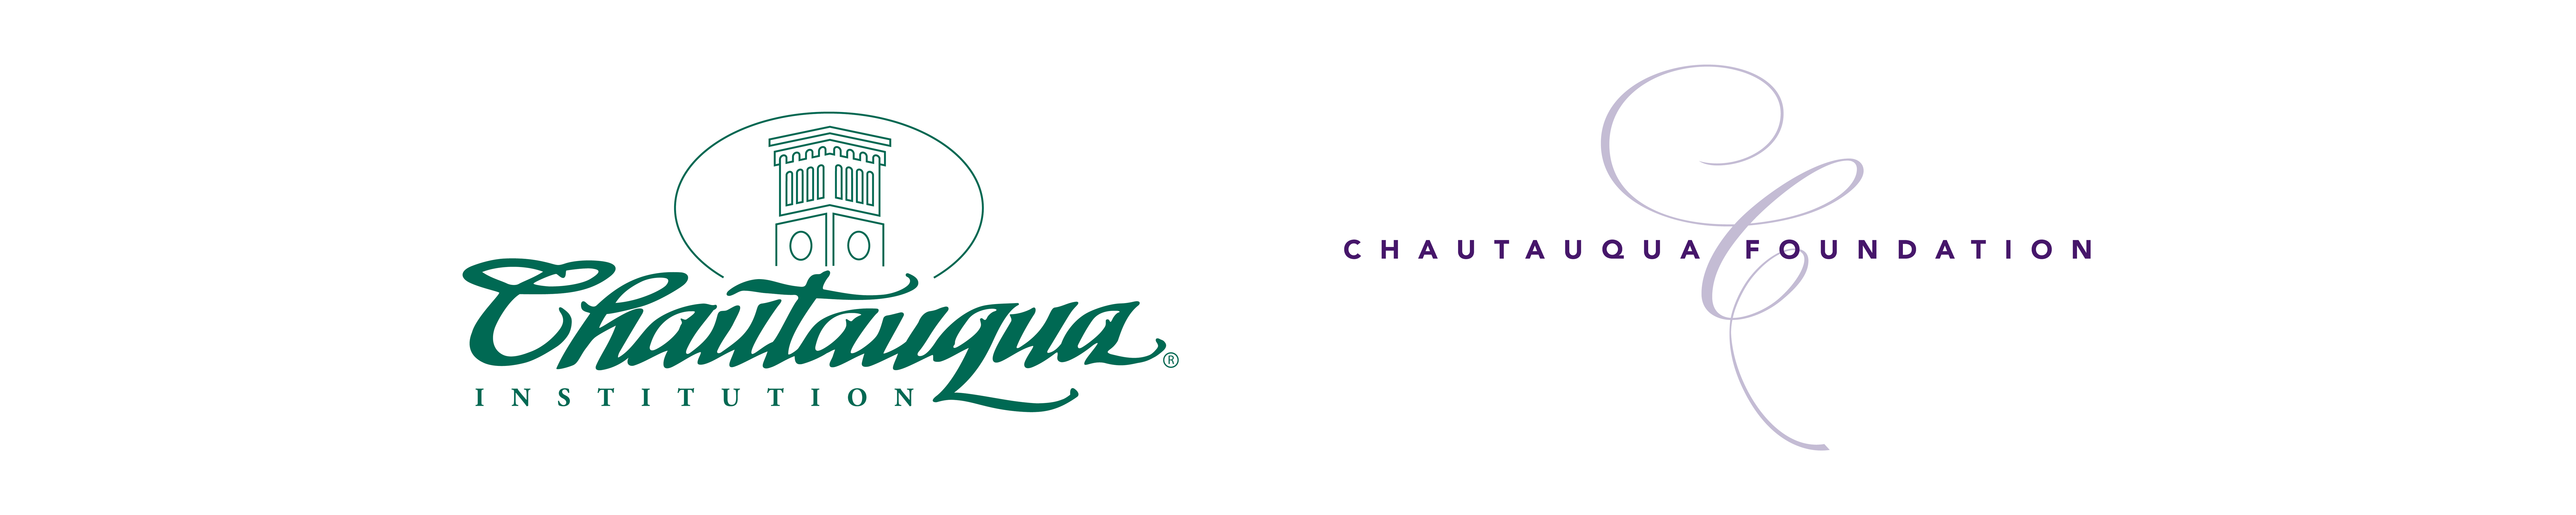 the Chautauqua Foundation